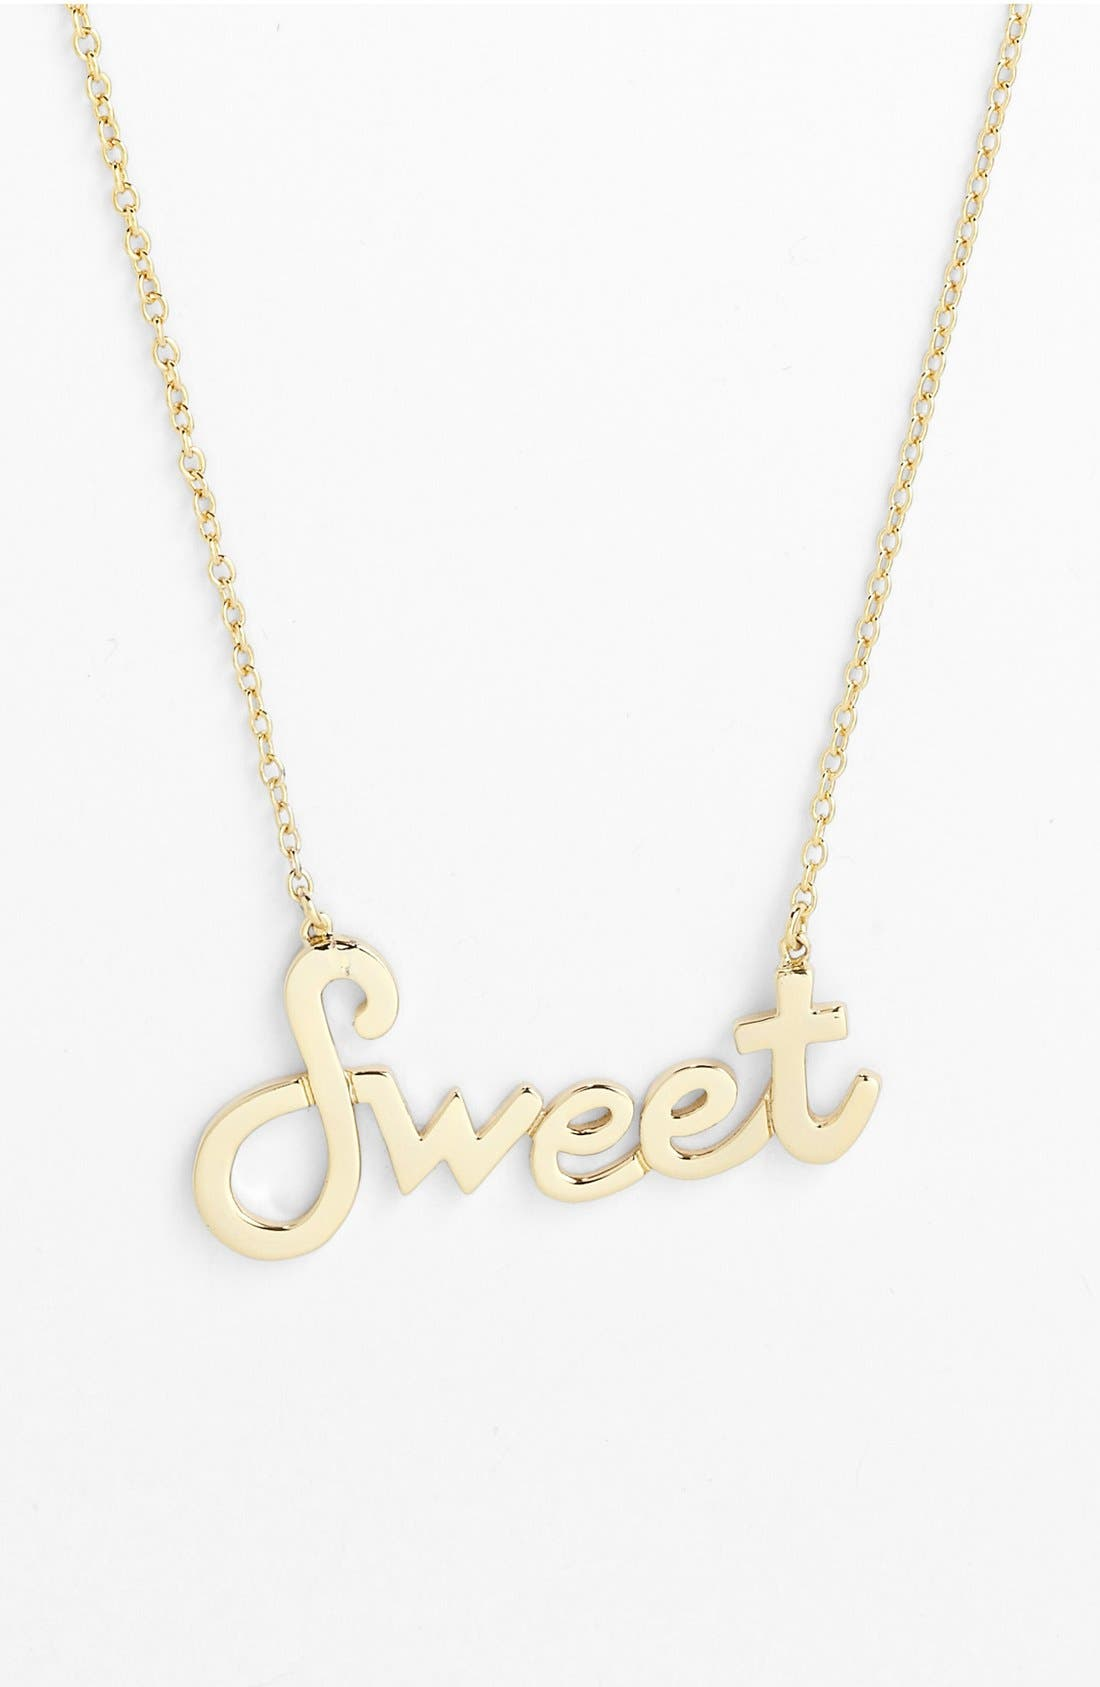 Alternate Image 1 Selected - Ariella Collection 'Attitude' Pendant Necklace (Nordstrom Exclusive)